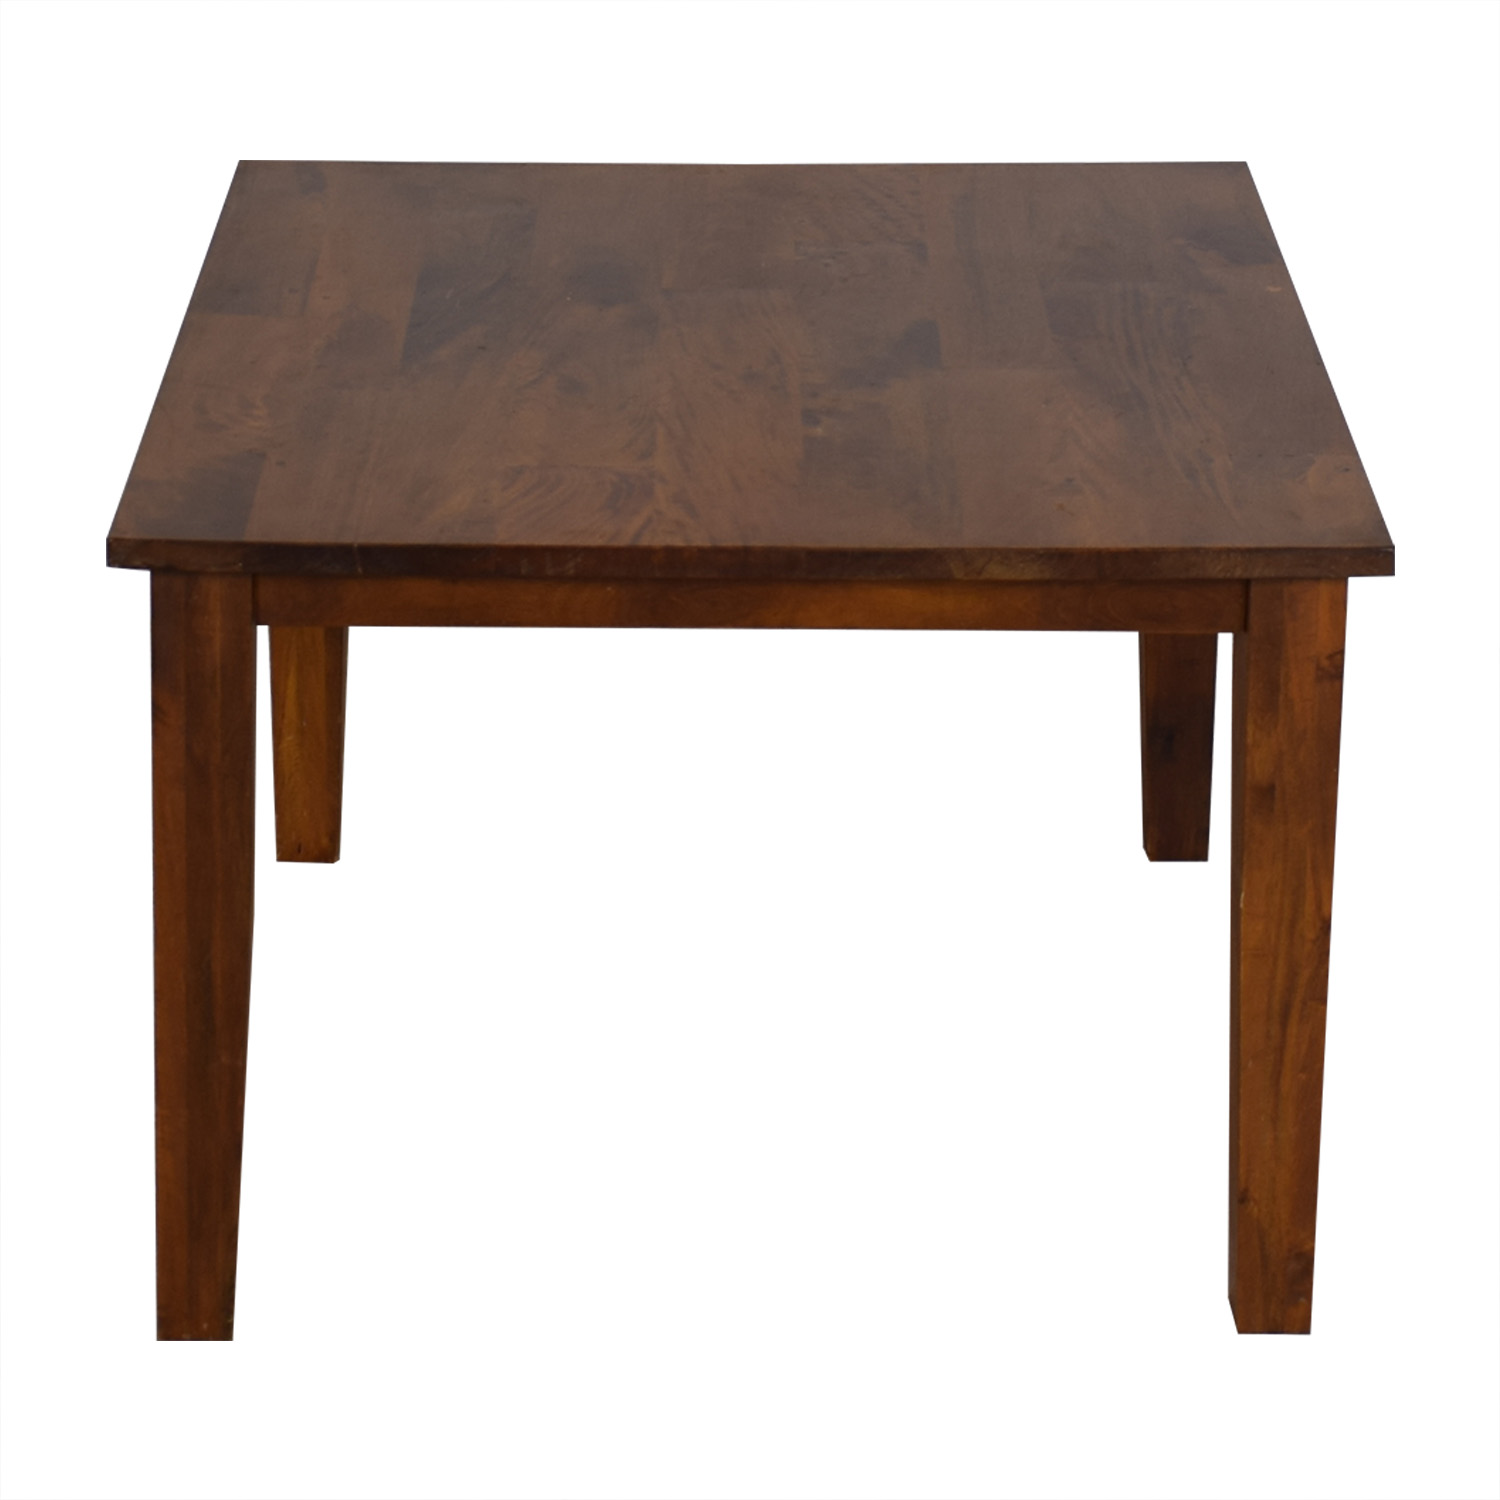 Crate & Barrel Crate & Barrel Dining Table brown.